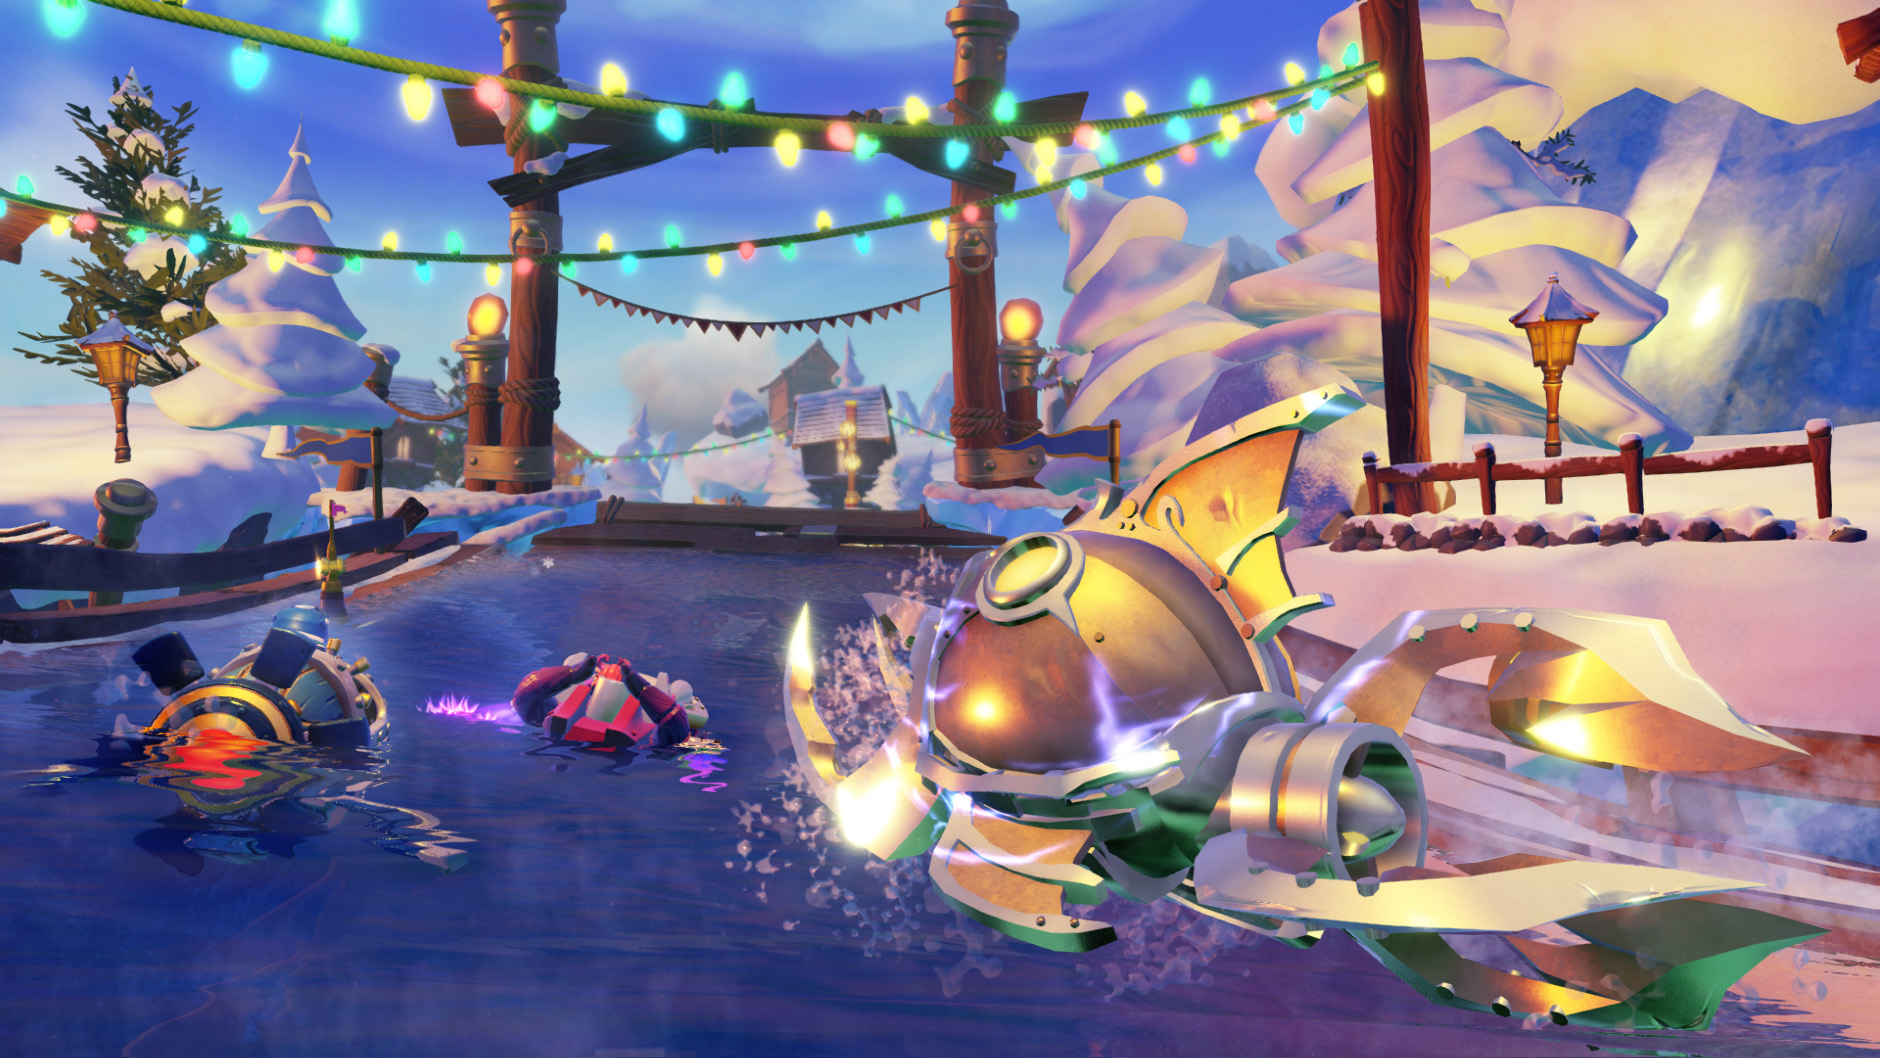 Uncategorized Can You Play Skylanders Online skylanders superchargers goes online comes with its own take on mario kart